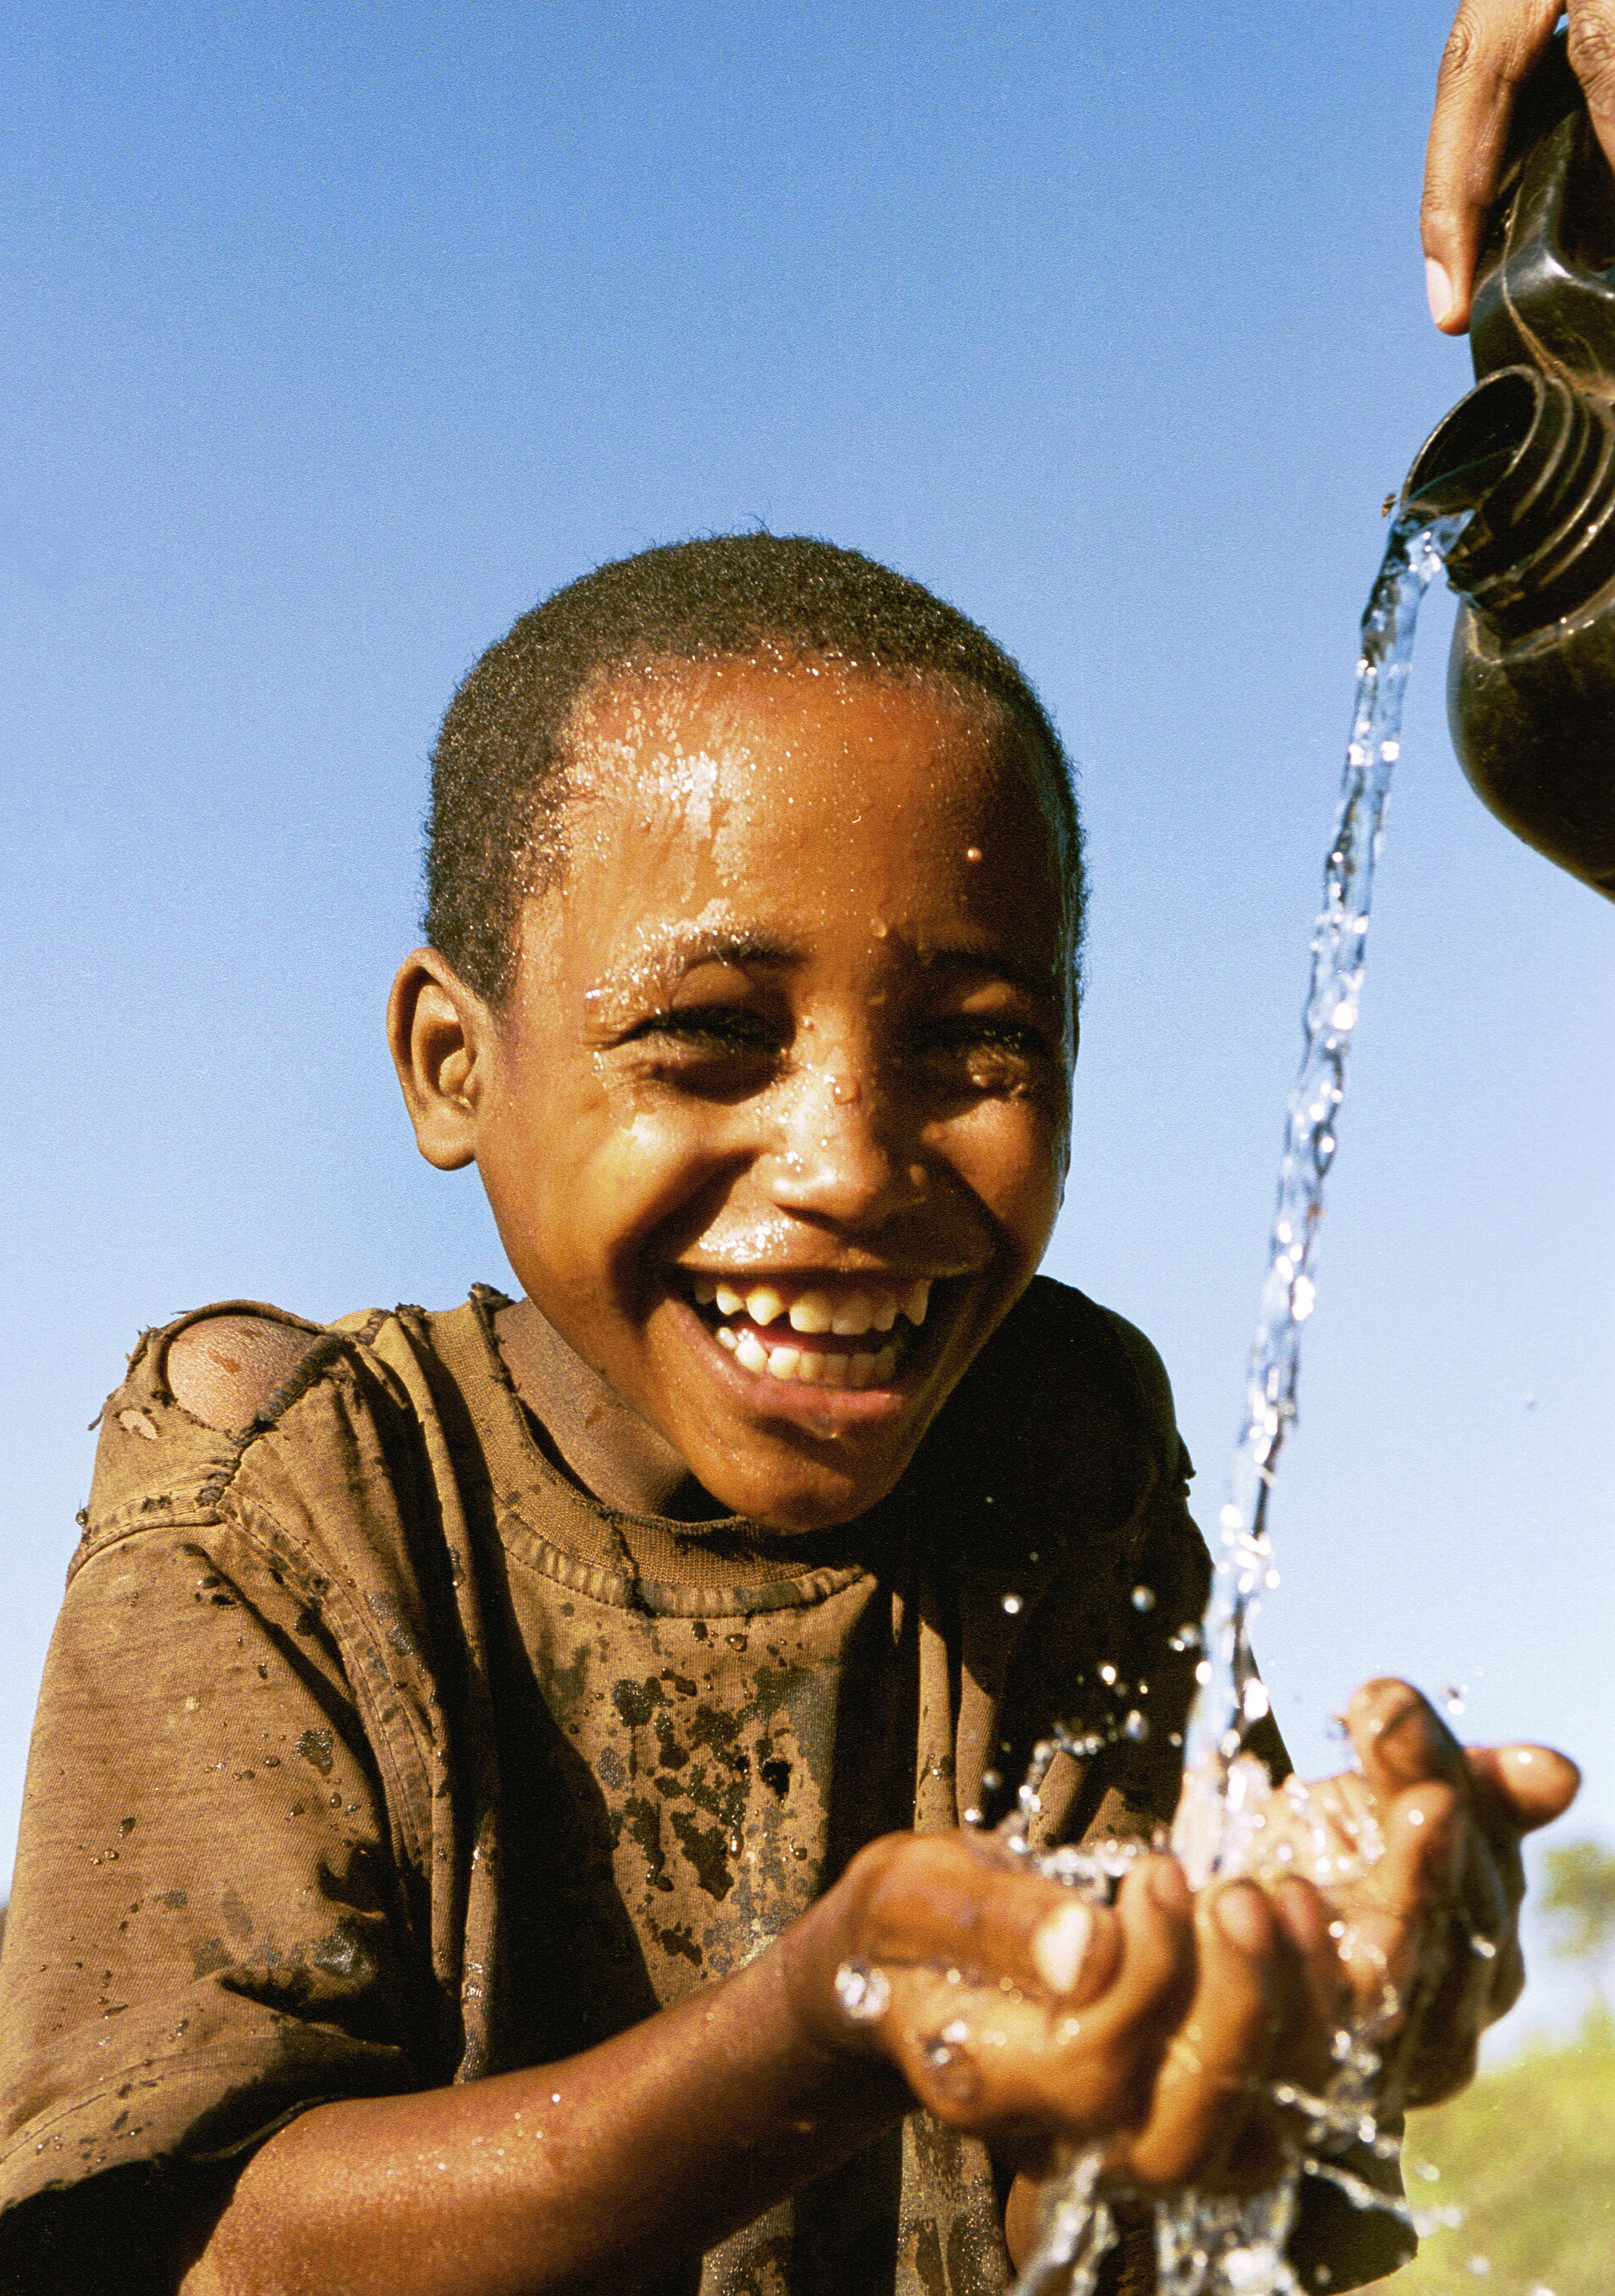 ETHIOPIA_10_Face washing_SHOPPED AND CROPPED_Gilbert.jpg